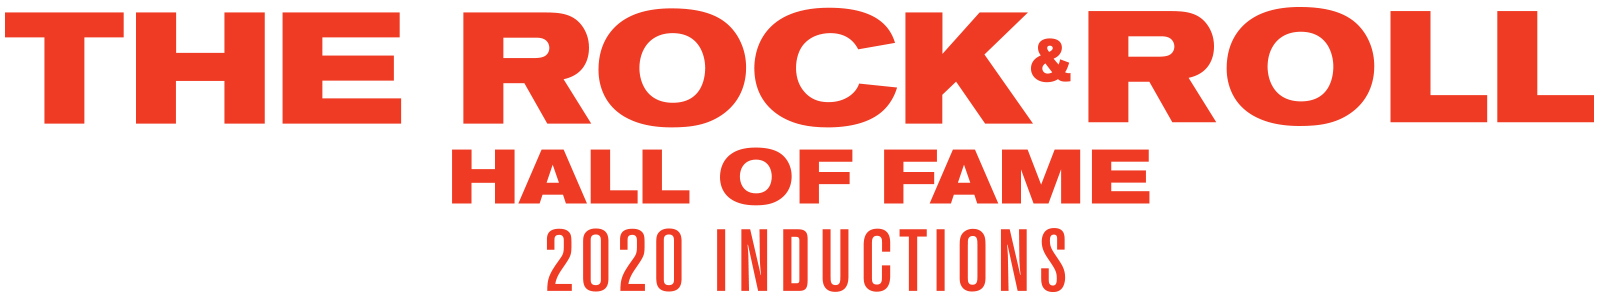 2020 rock and roll hall of fame induction ceremony